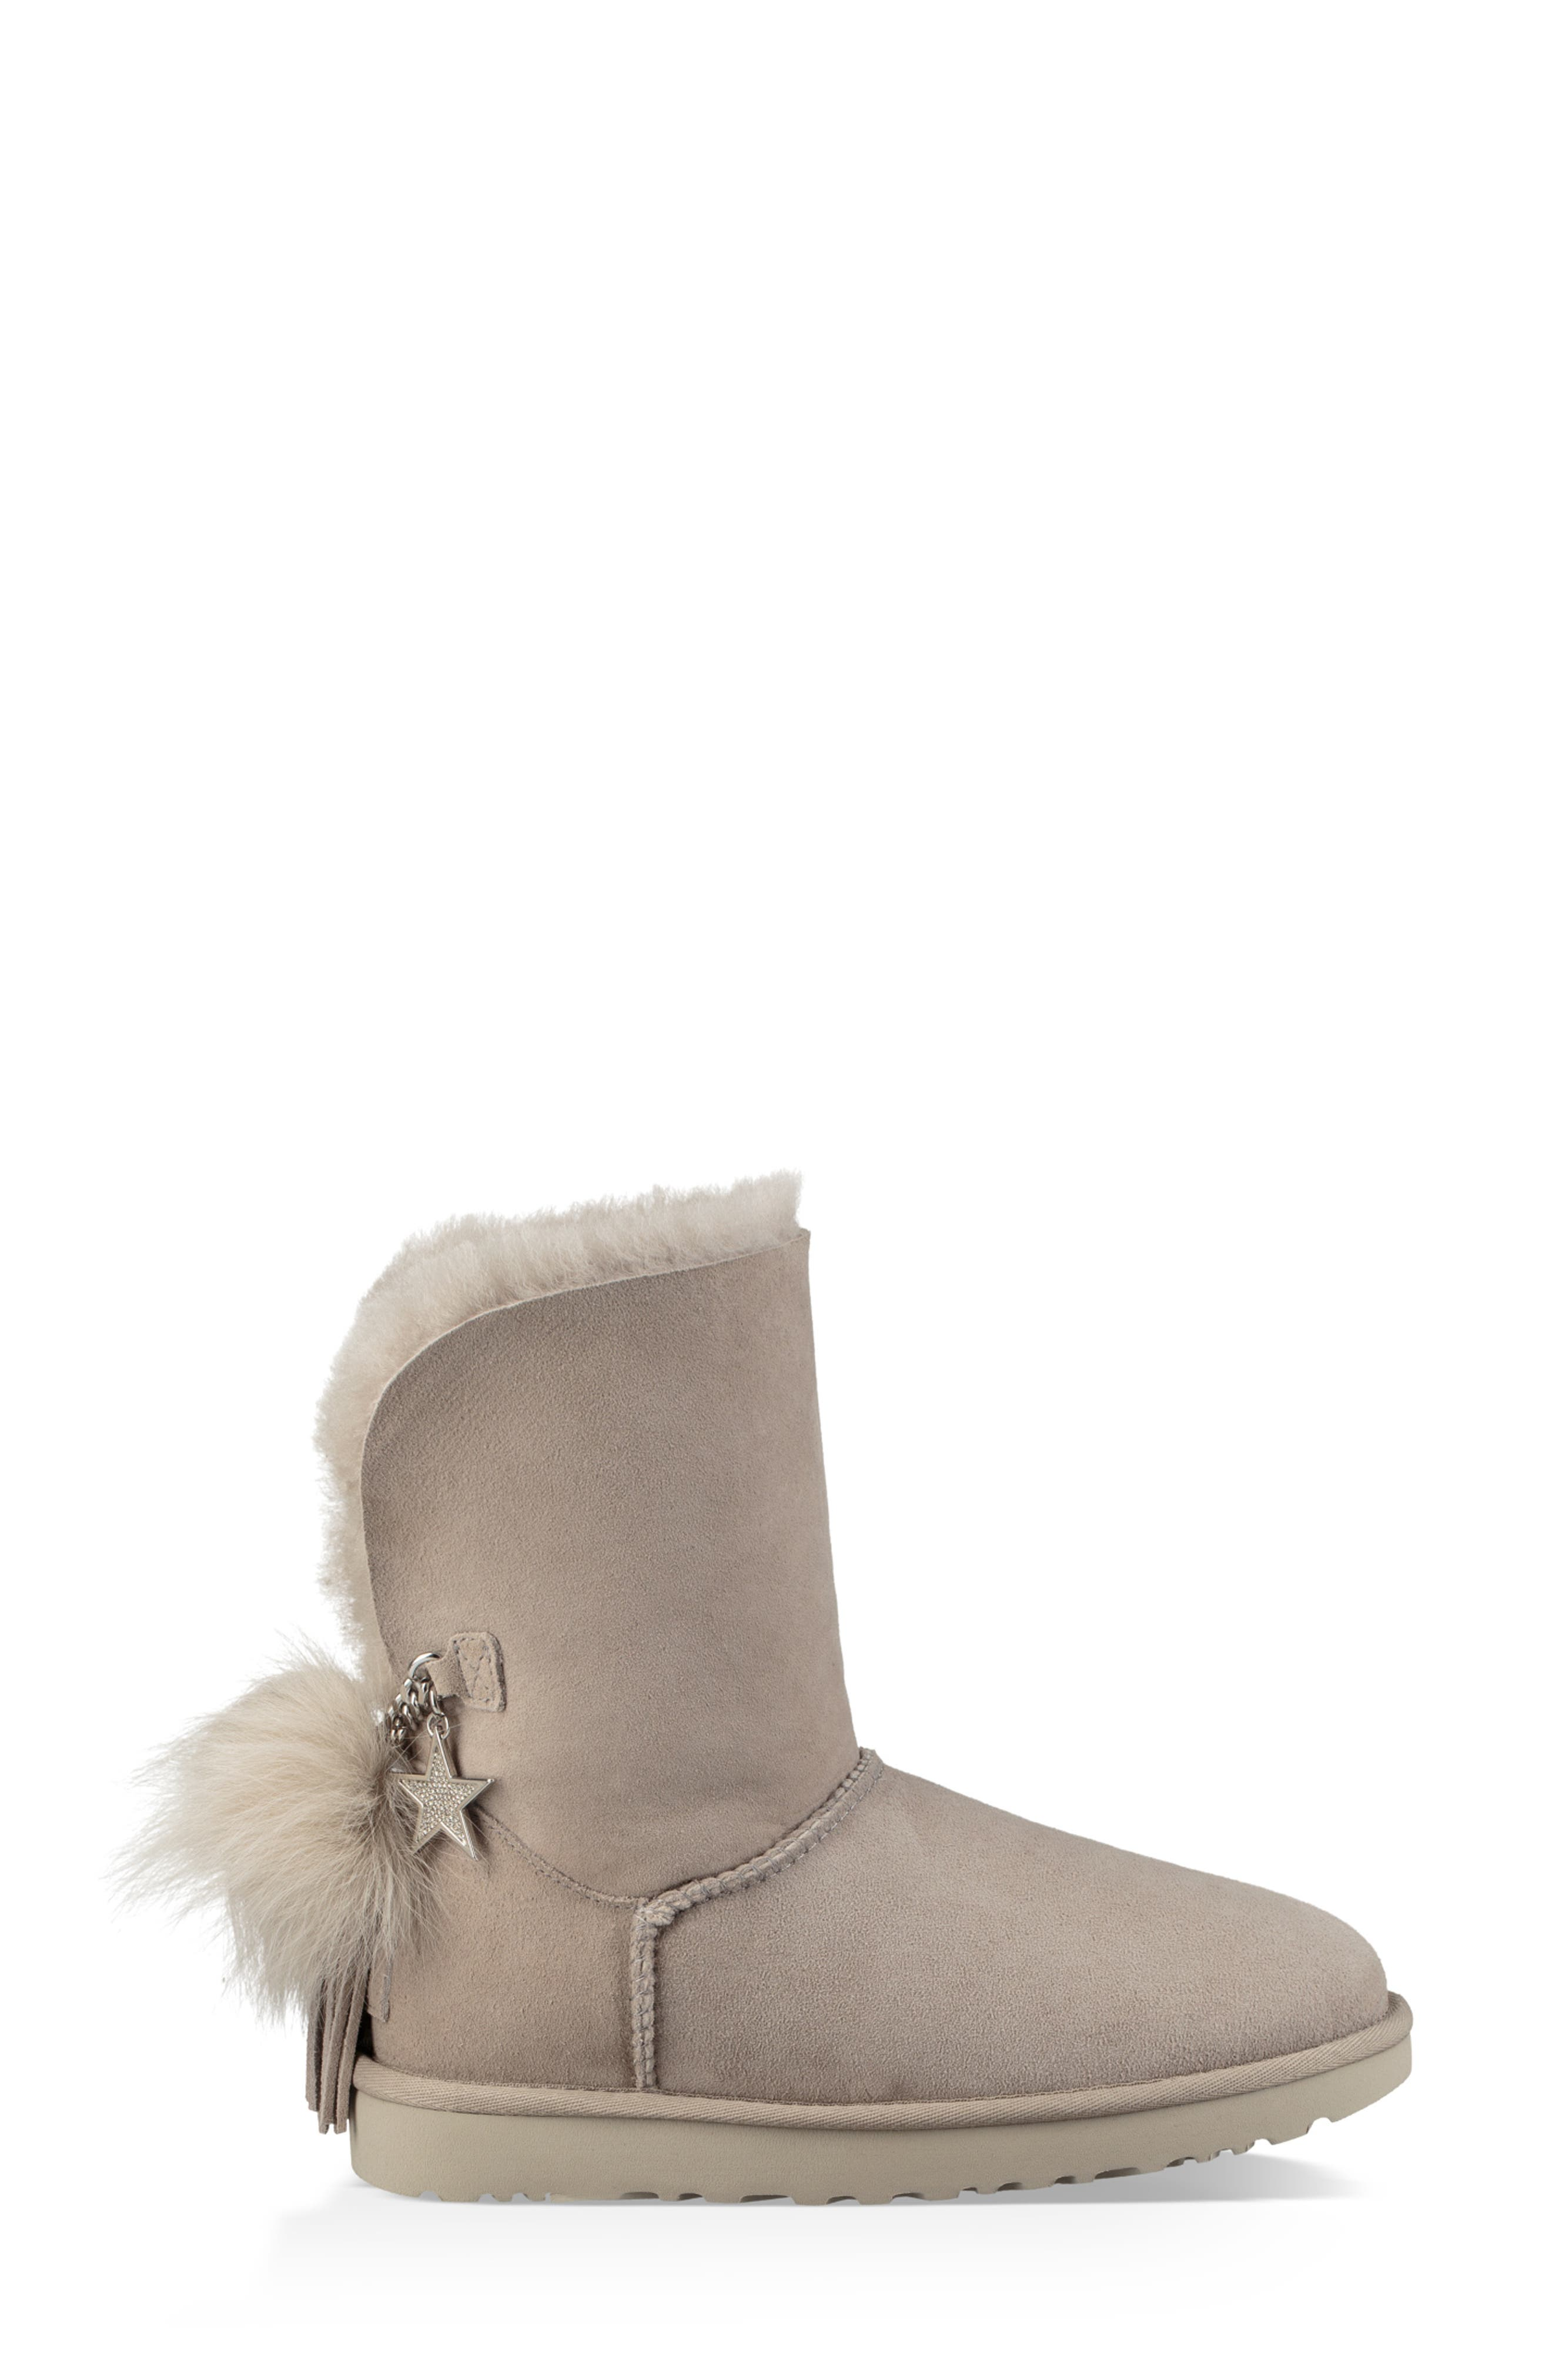 Classic Charm Bootie,                             Alternate thumbnail 3, color,                             WILLOW SUEDE